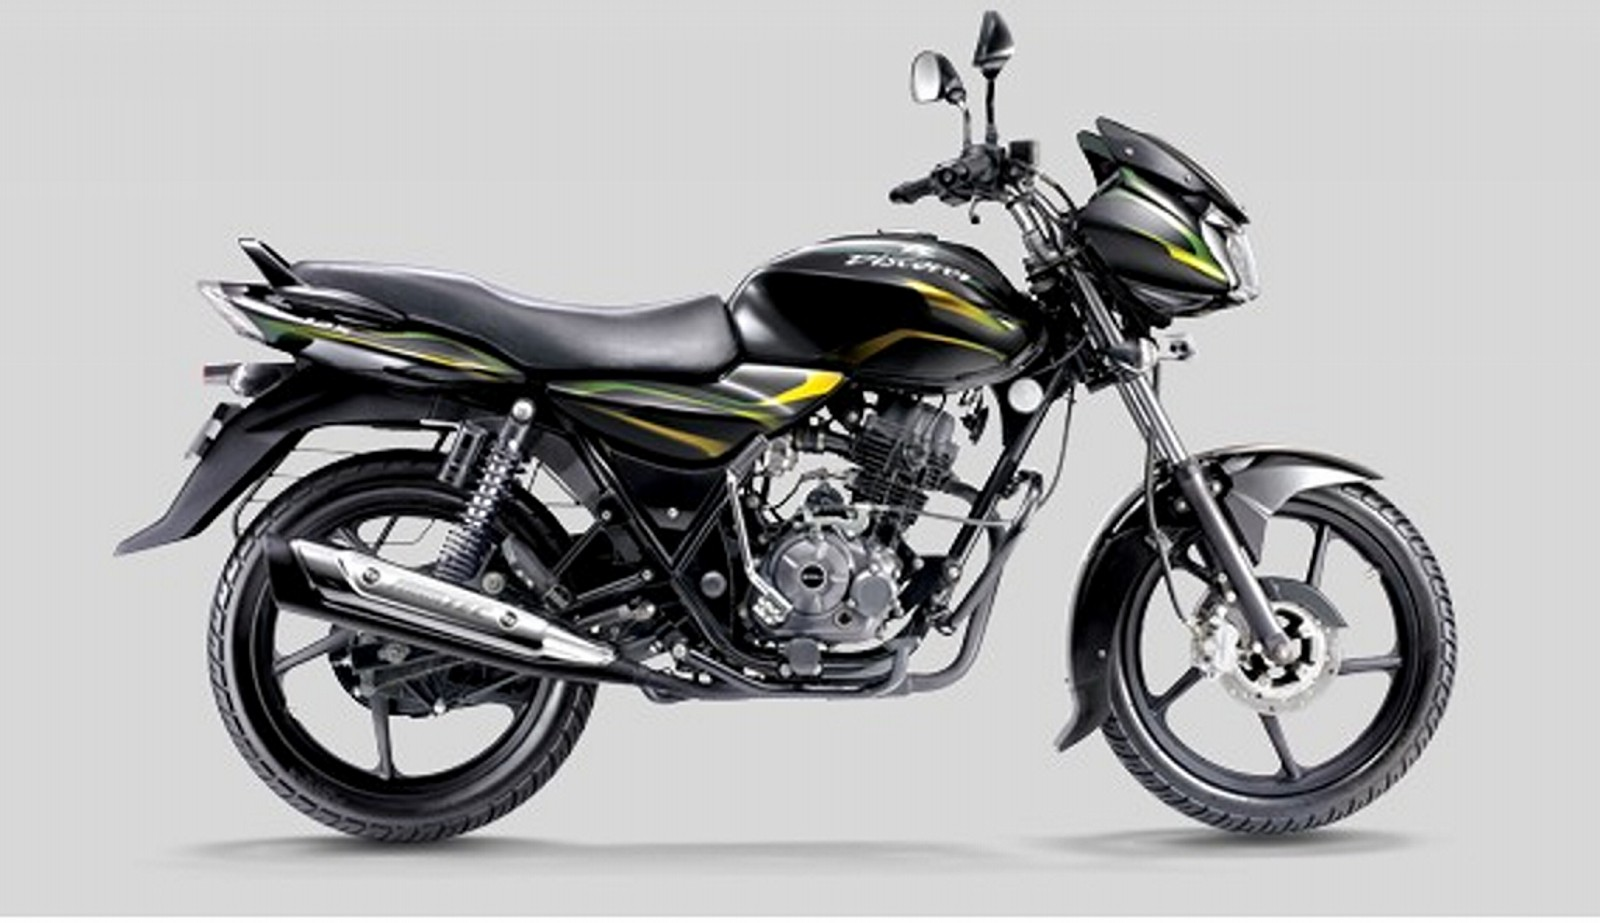 Motorcycle Pictures: Bajaj Discover DTS-i 125